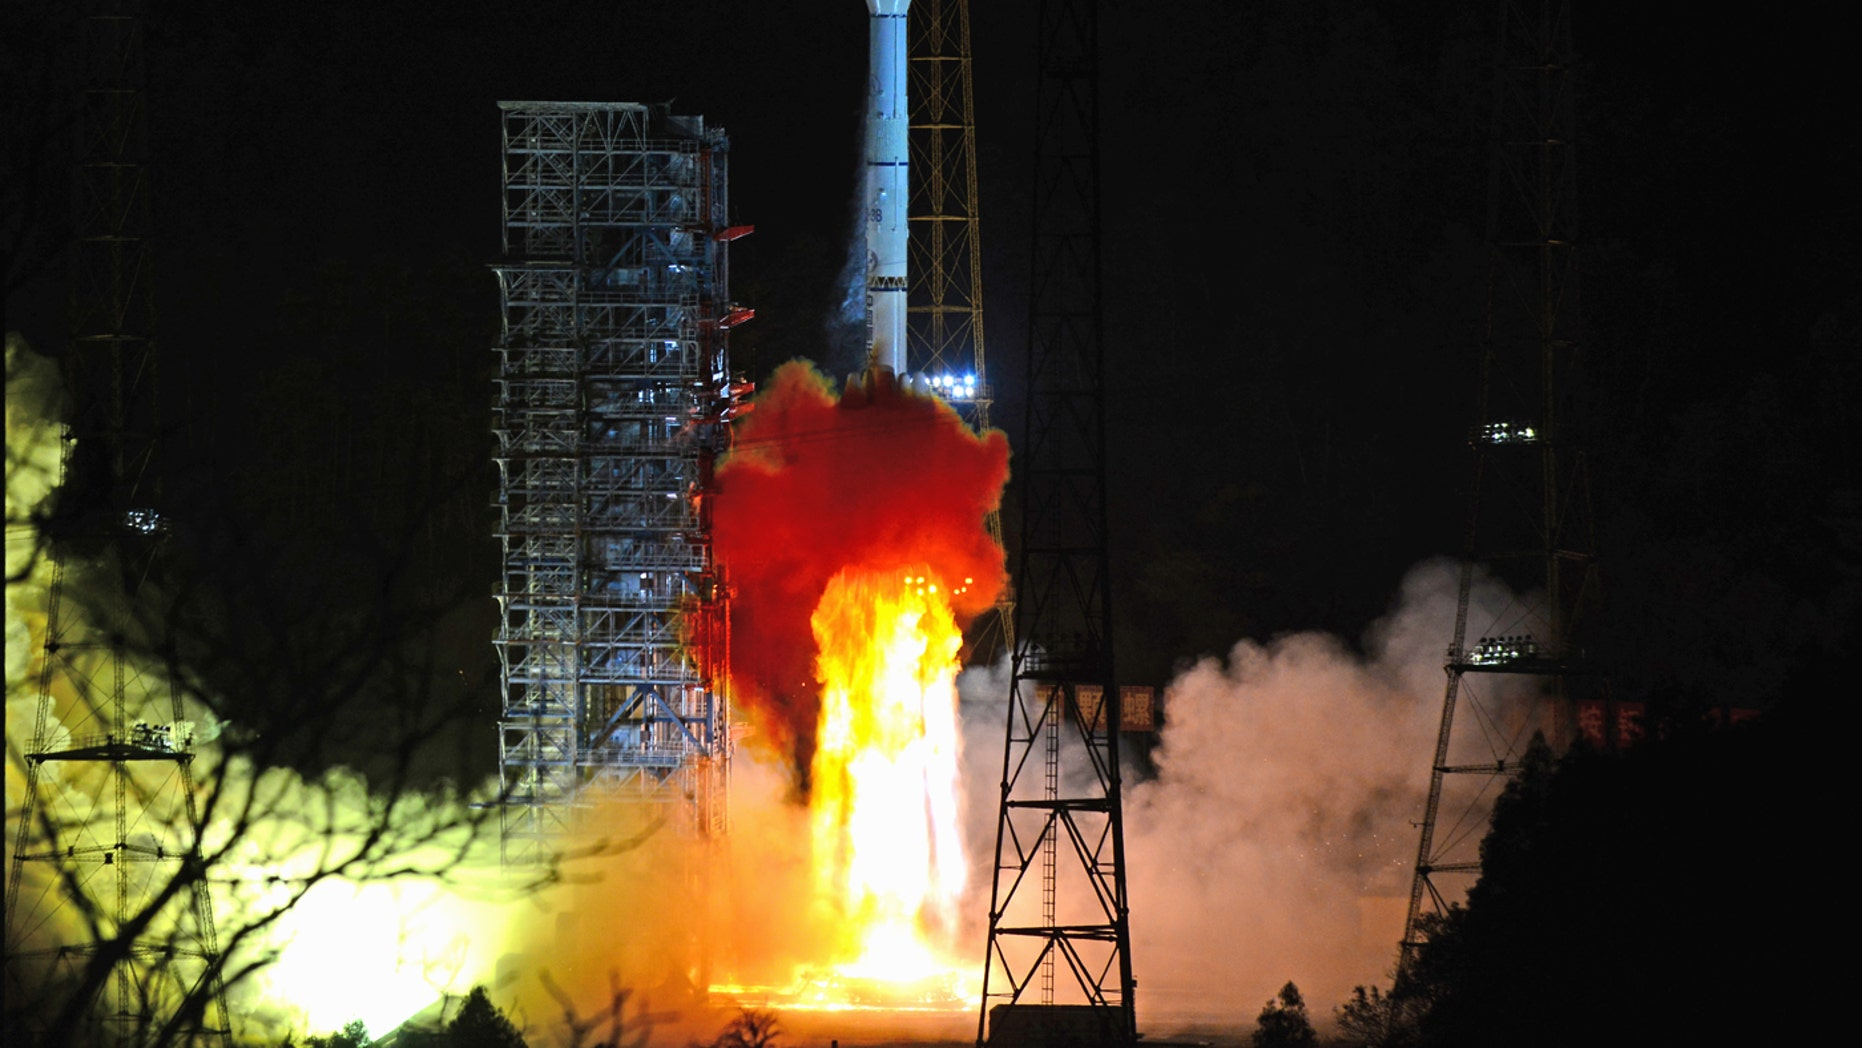 """XICHANG, CHINA - DECEMBER 8: A long March 3B rocket carrying the Chang'e-4 lunar probe, including a lander and a rover, launches on December 8, 201<div class=""""e3lan e3lan-in-post1""""><script async src=""""//pagead2.googlesyndication.com/pagead/js/adsbygoogle.js""""></script> <!-- Text_Display_Ad --> <ins class=""""adsbygoogle""""      style=""""display:block""""      data-ad-client=""""ca-pub-7542518979287585""""      data-ad-slot=""""2196042218""""      data-ad-format=""""auto""""></ins> <script> (adsbygoogle = window.adsbygoogle    []).push({}); </script></div>8 from the Xichang Satellite Launch Center in Xichang, Sichuan Province, China. (Photo by VCG / VCG via Getty Images)"""